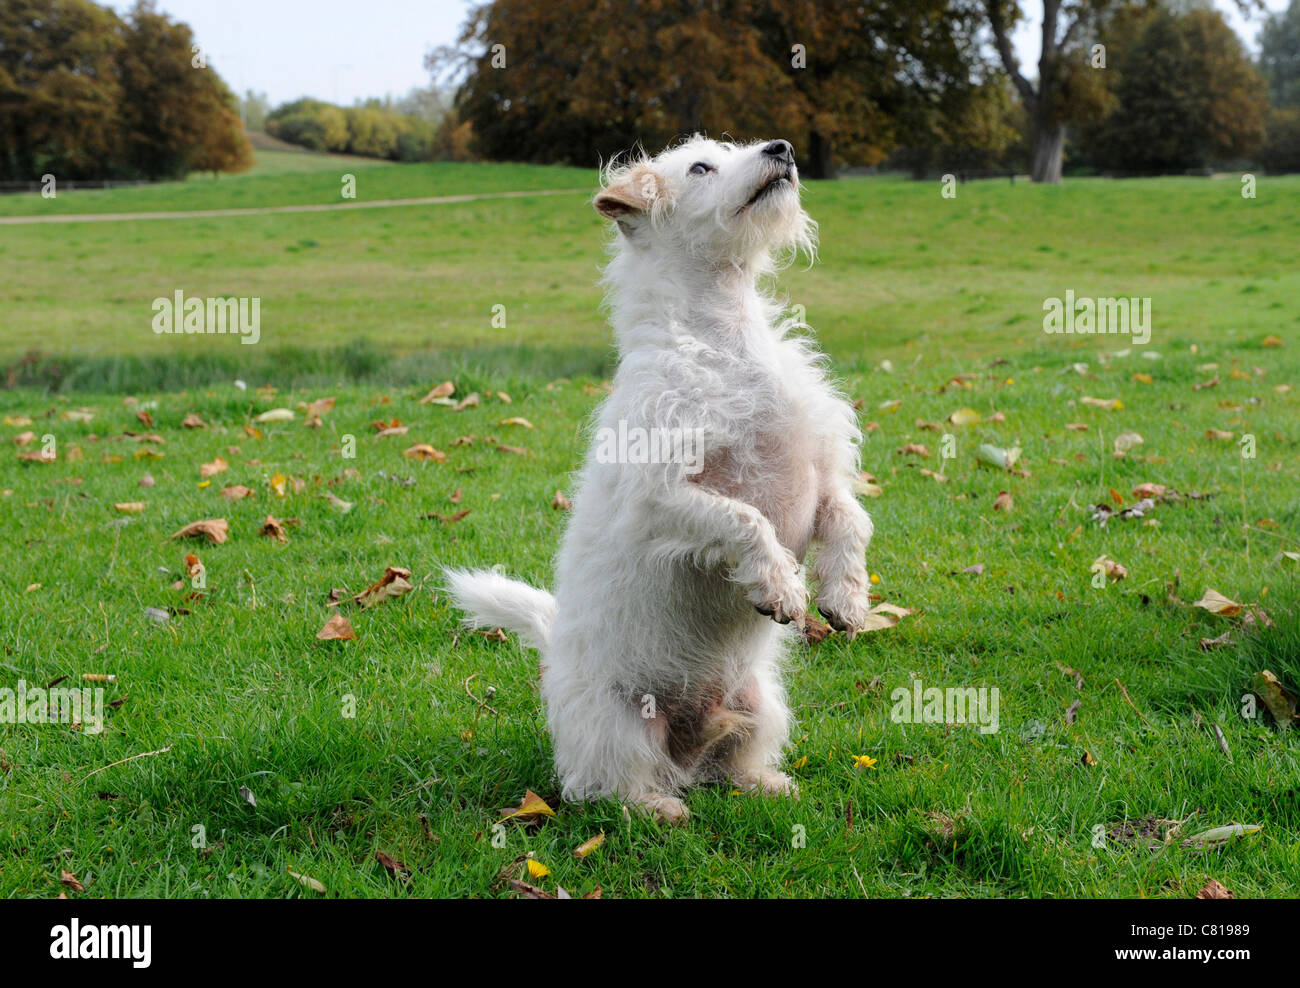 A small white old dog standing on two feet - Stock Image